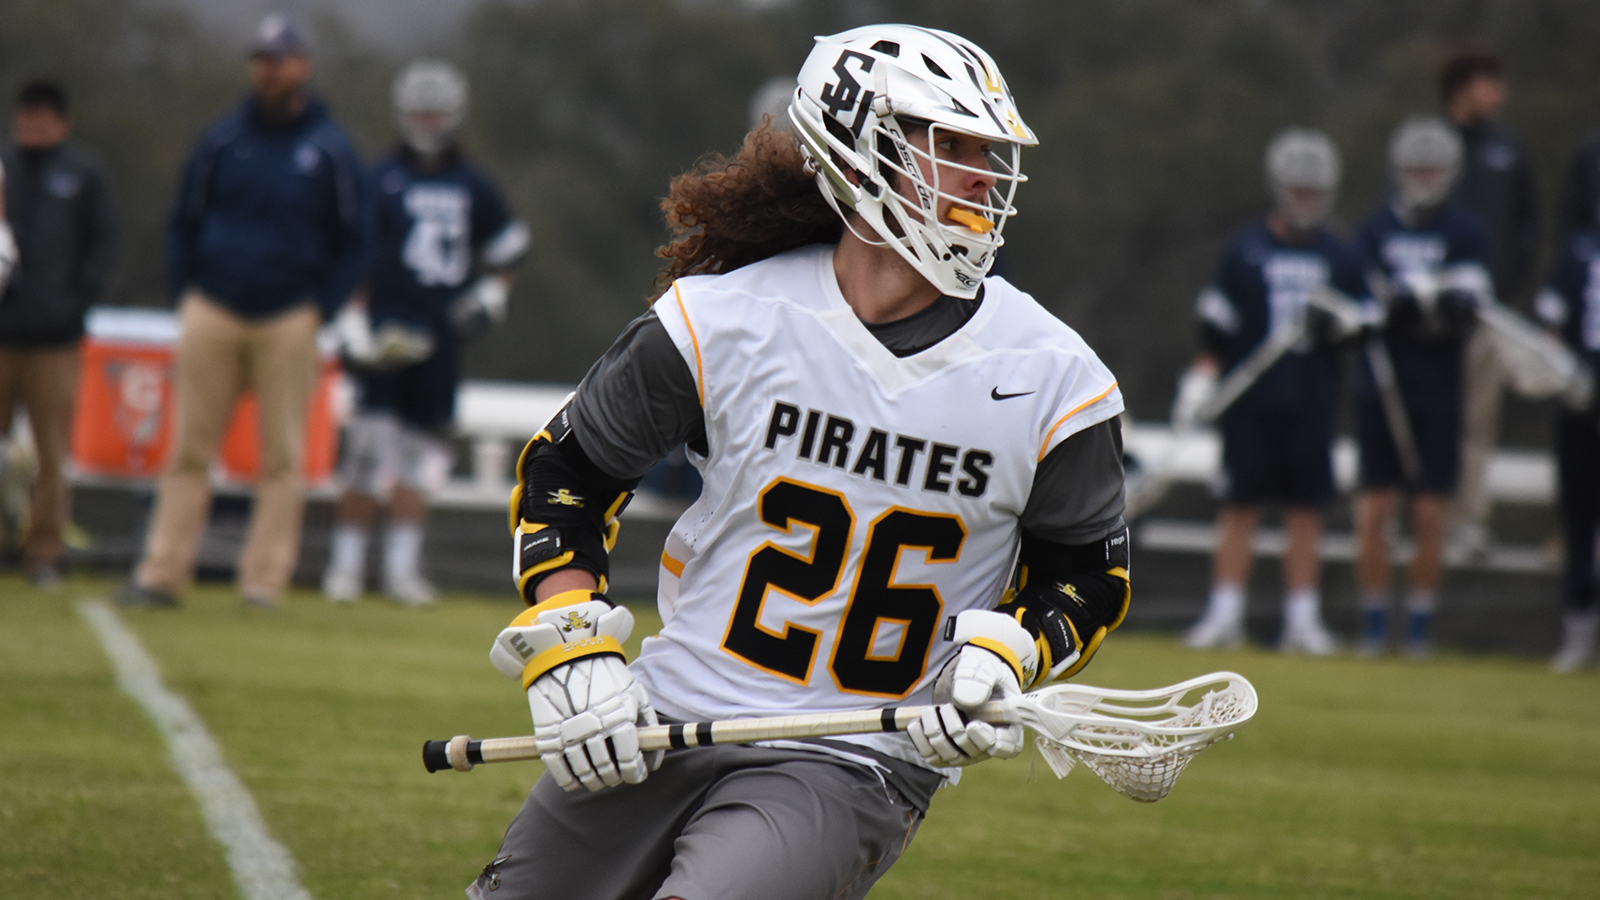 Men's Lax Closes Season with Loss to Rhodes